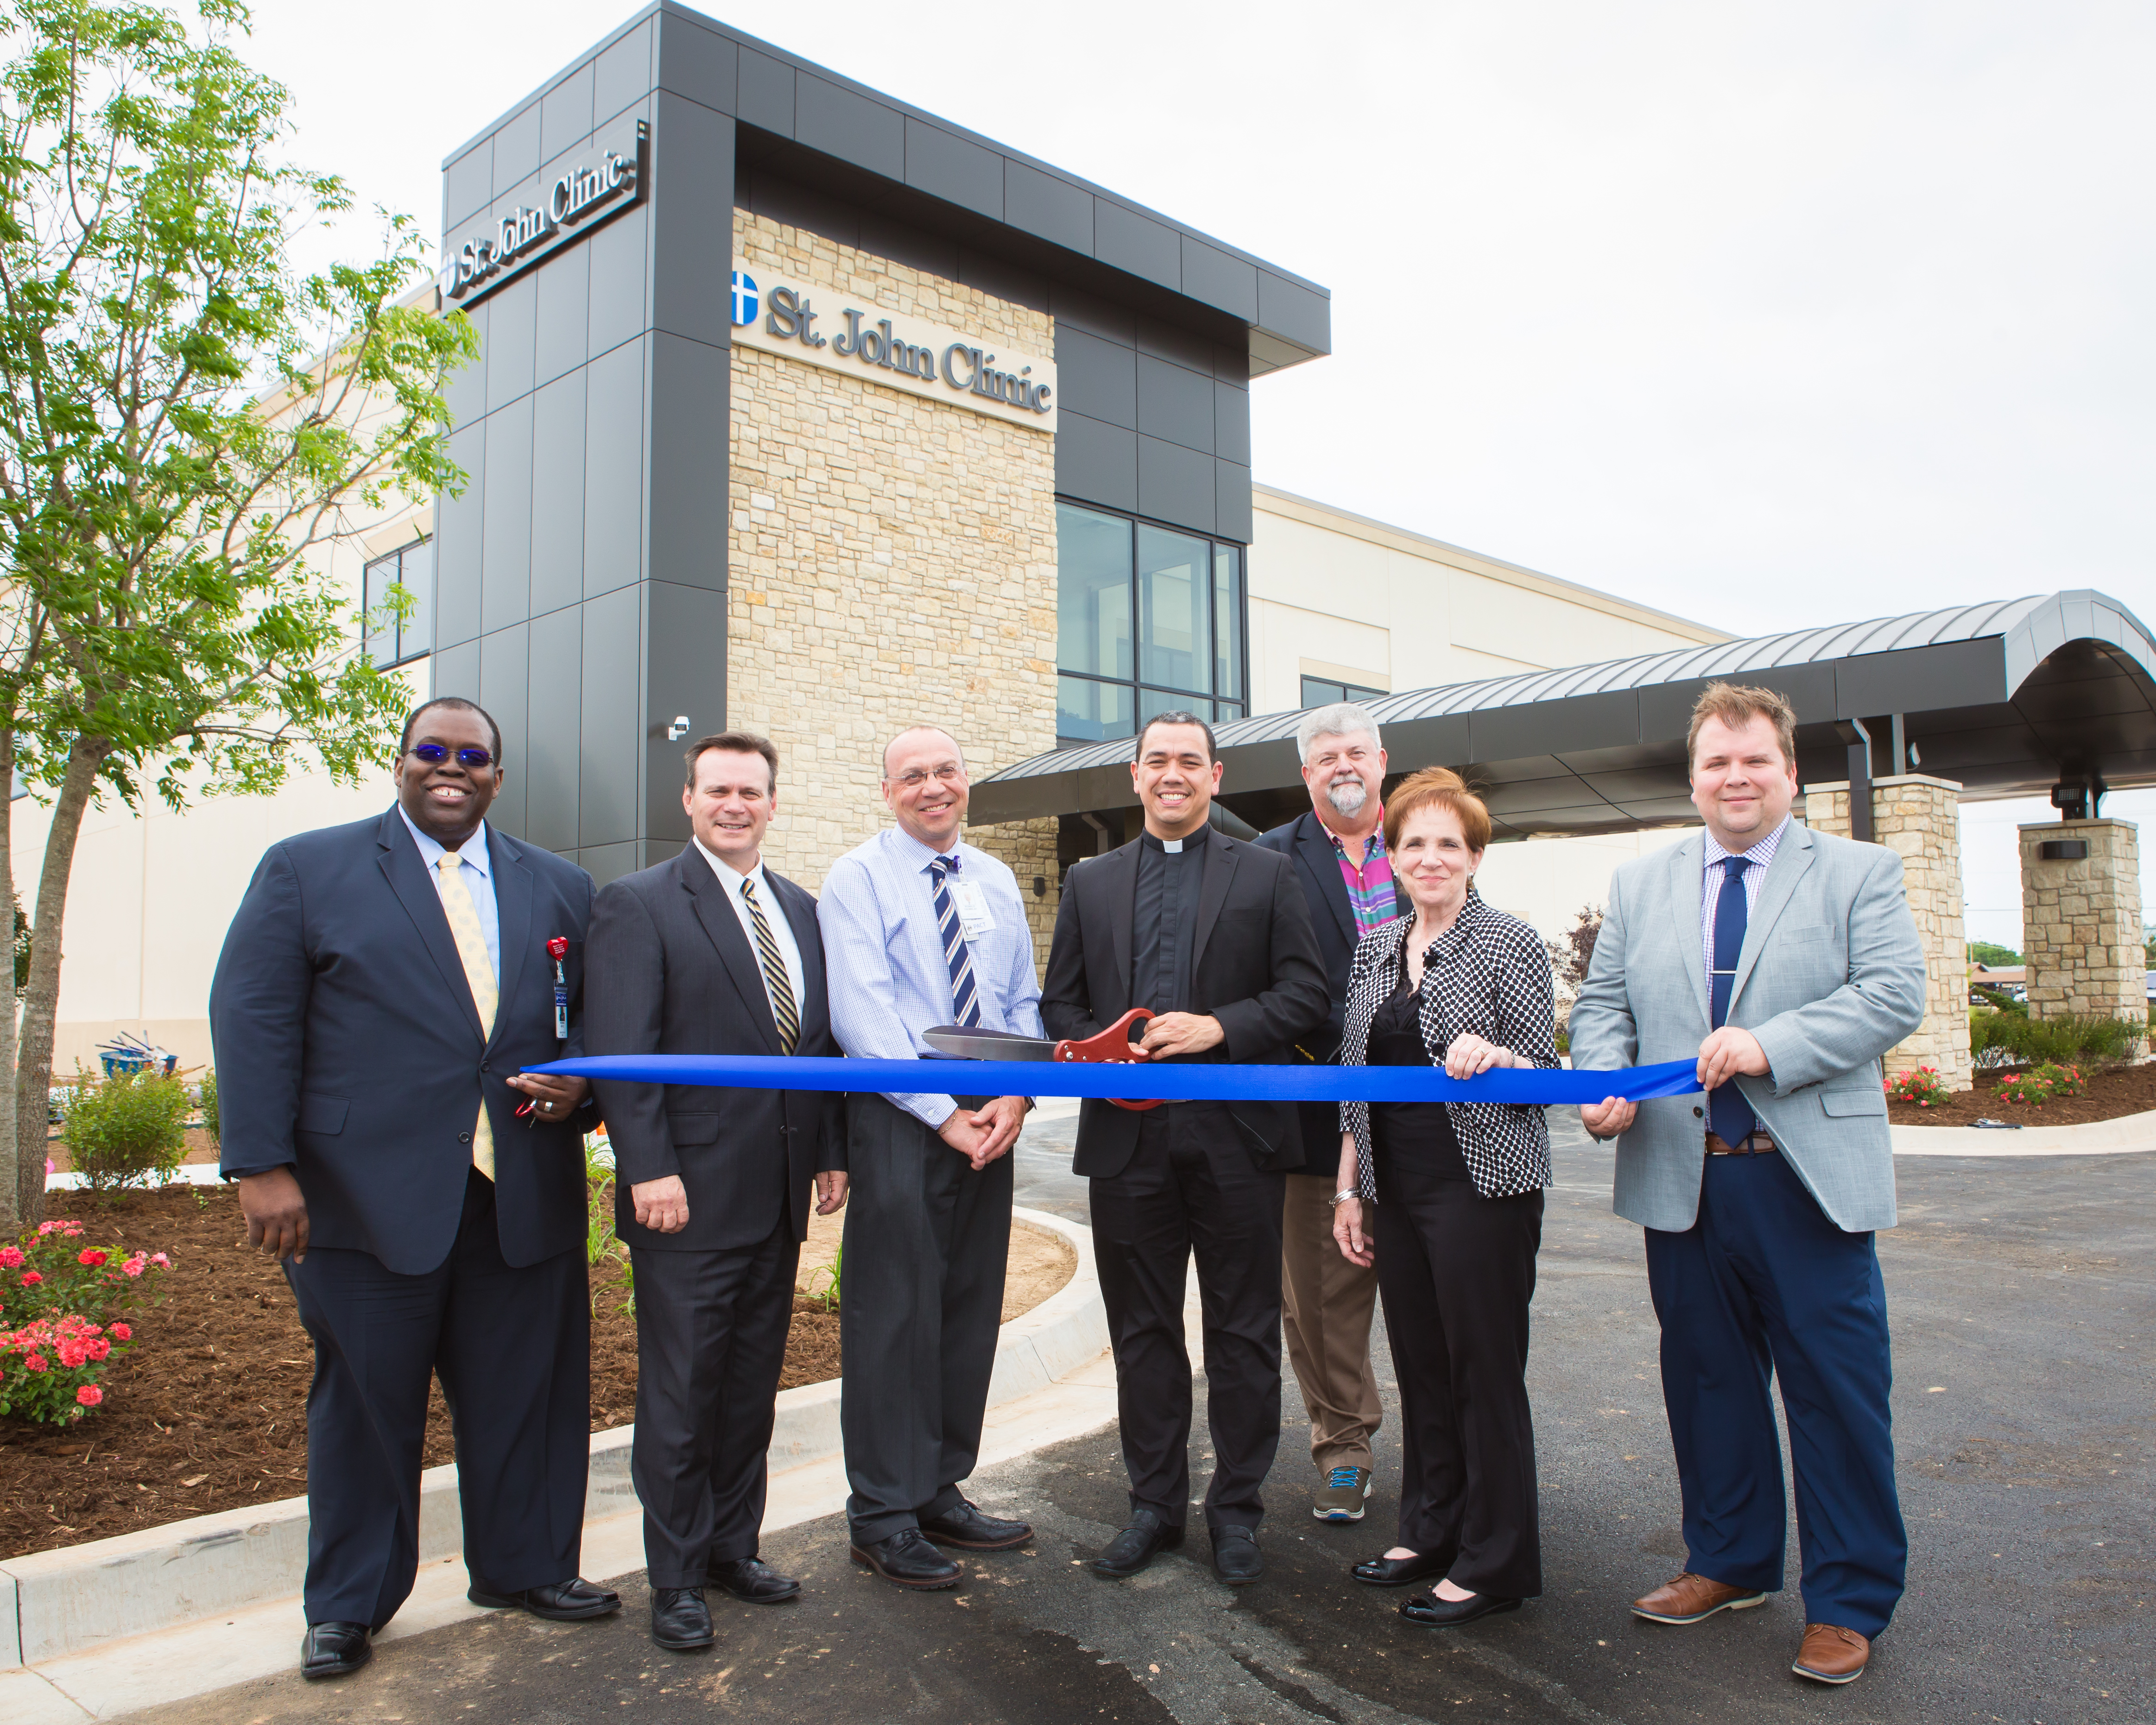 St John Clinic opens new locations in Bixby and Jenks